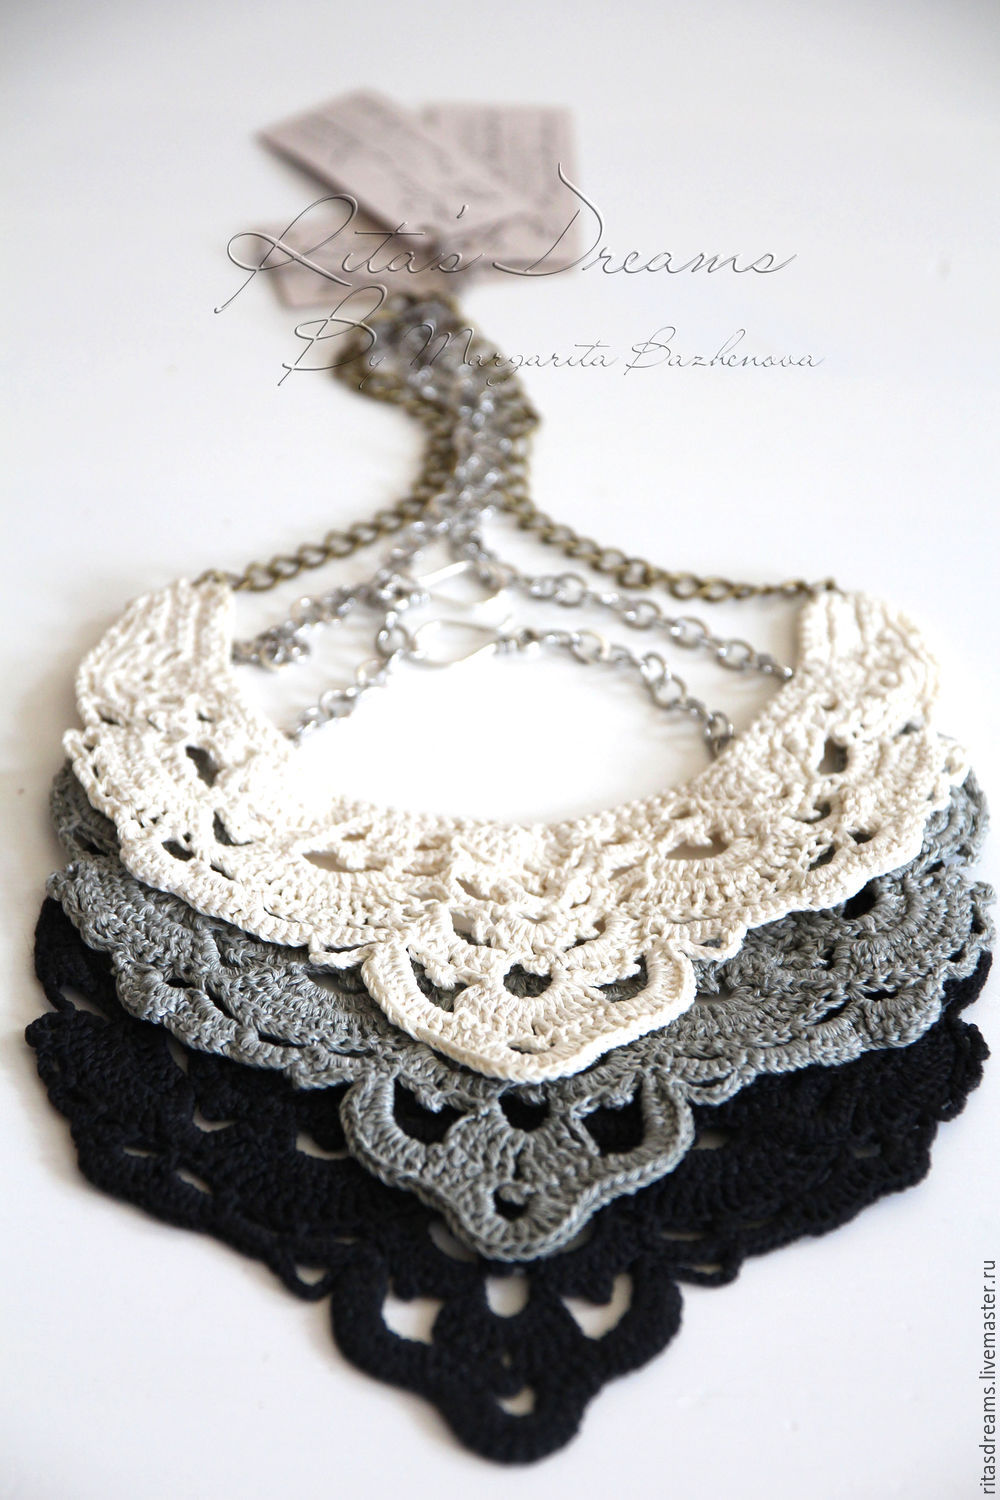 Openwork crochet chain necklace is available in three color options: milk white, gray and black.